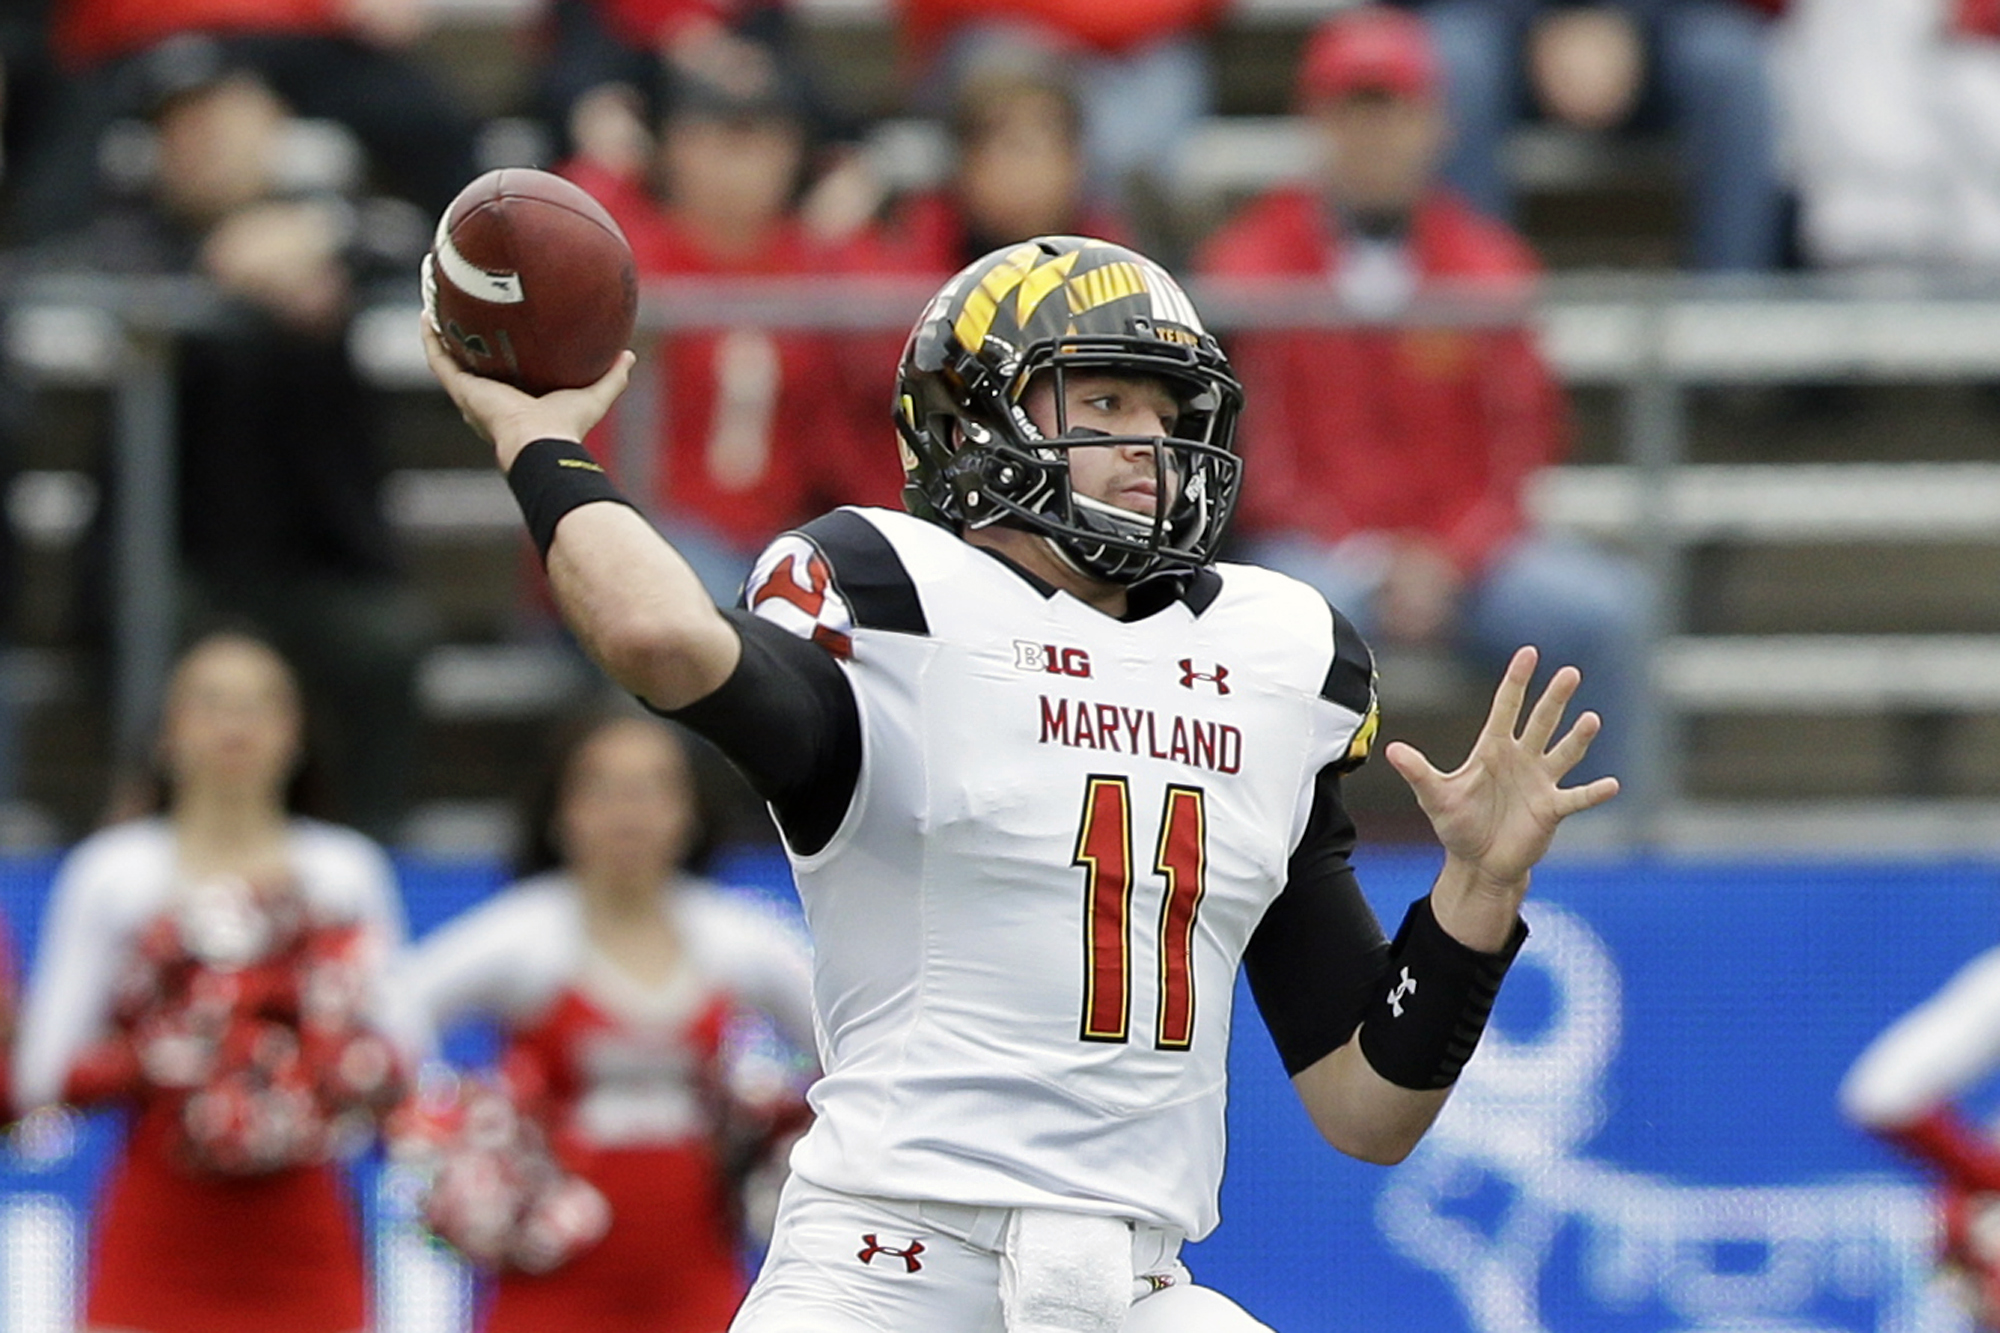 FILE - In this Nov. 28, 2015, file photo, Maryland quarterback Perry Hills (11) throws a pass during the first half of an NCAA college football game against Rutgers in Piscataway, N.J. Hills and Caleb Rowe are competing for the starting job under first-ye